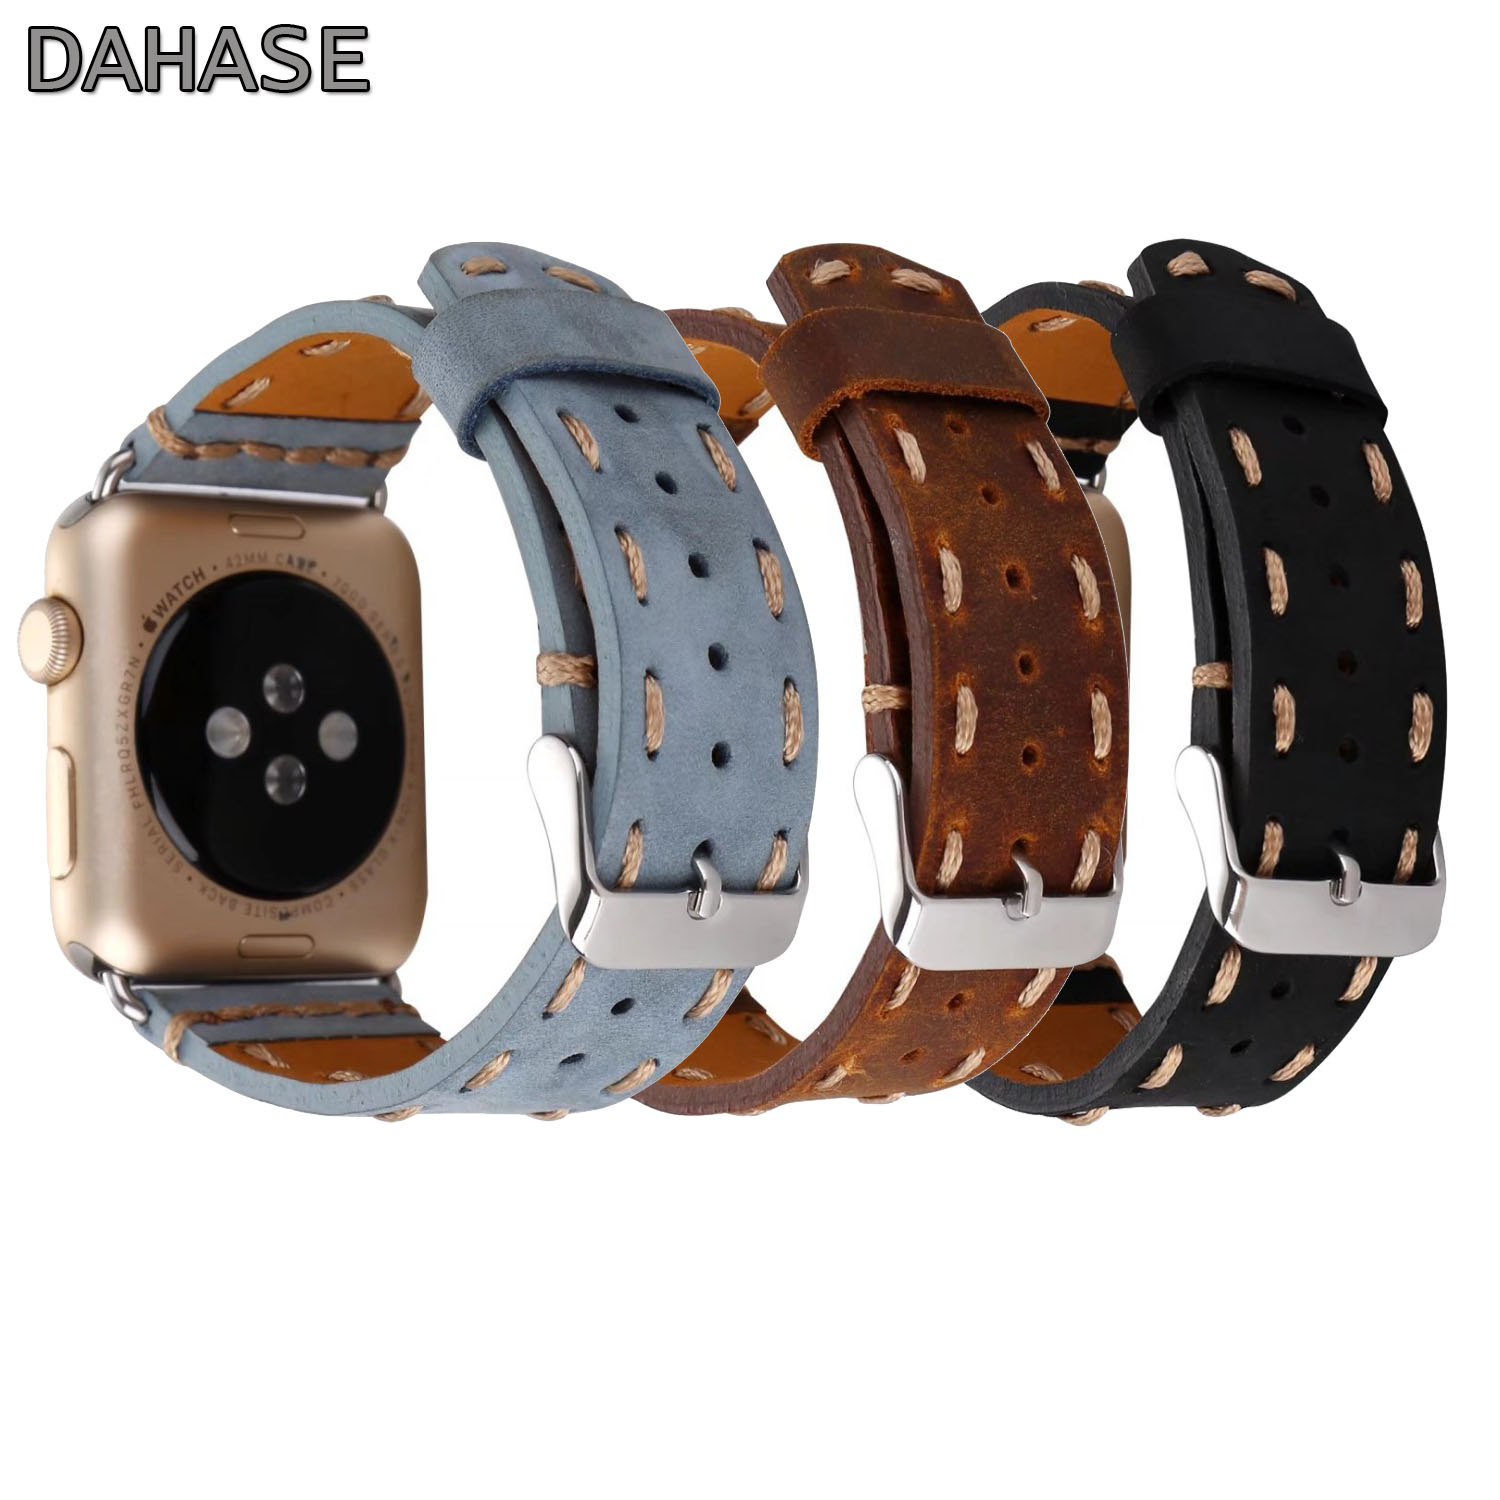 Vintage Handmade Genuine Leather Watch Band for Apple Watch Series 1/2/3/4 Strap Thread Bracelet for iWatch 38/42mm 40/44mm Band for apple watch series 4 iwatch band real carbon fiber watch straps for apple watch series 1 2 3 leahter bracelet 38 42 40 44mm